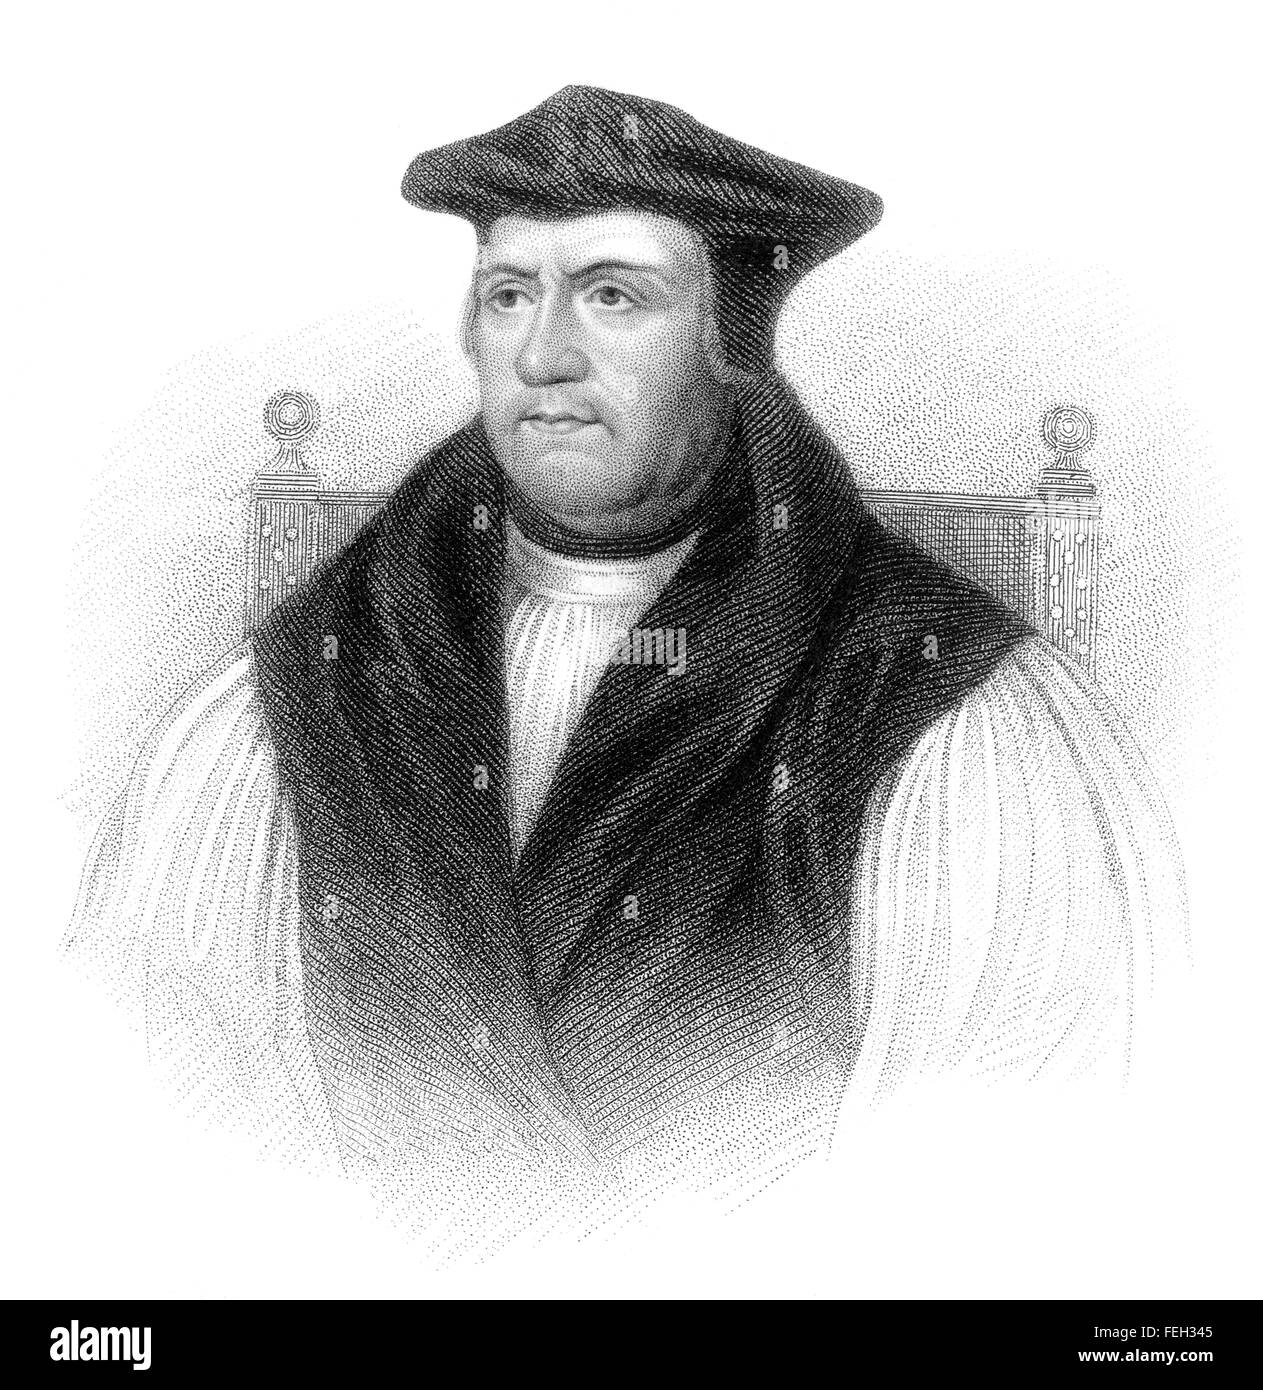 Matthew Parker, 1504-1575, Archbishop of Canterbury, a powerful figure of the English Reformation - Stock Image